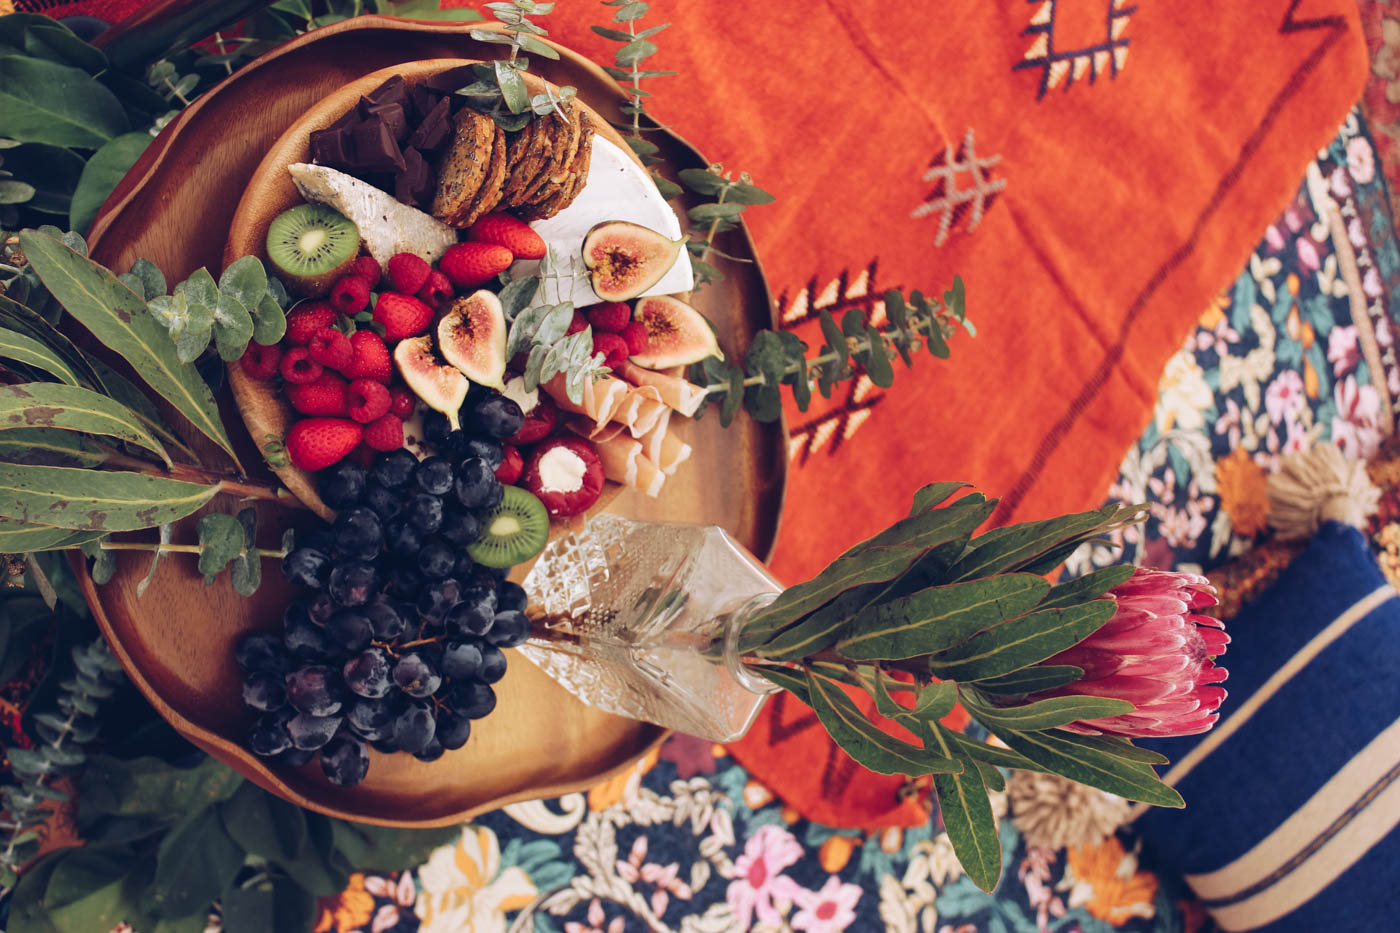 the_Collection_co_grazing_table_cairns_weddings_catering_grazing_platter_hire_pop_up_picnic_bell_tent_event_hire_styling-2-2.jpg